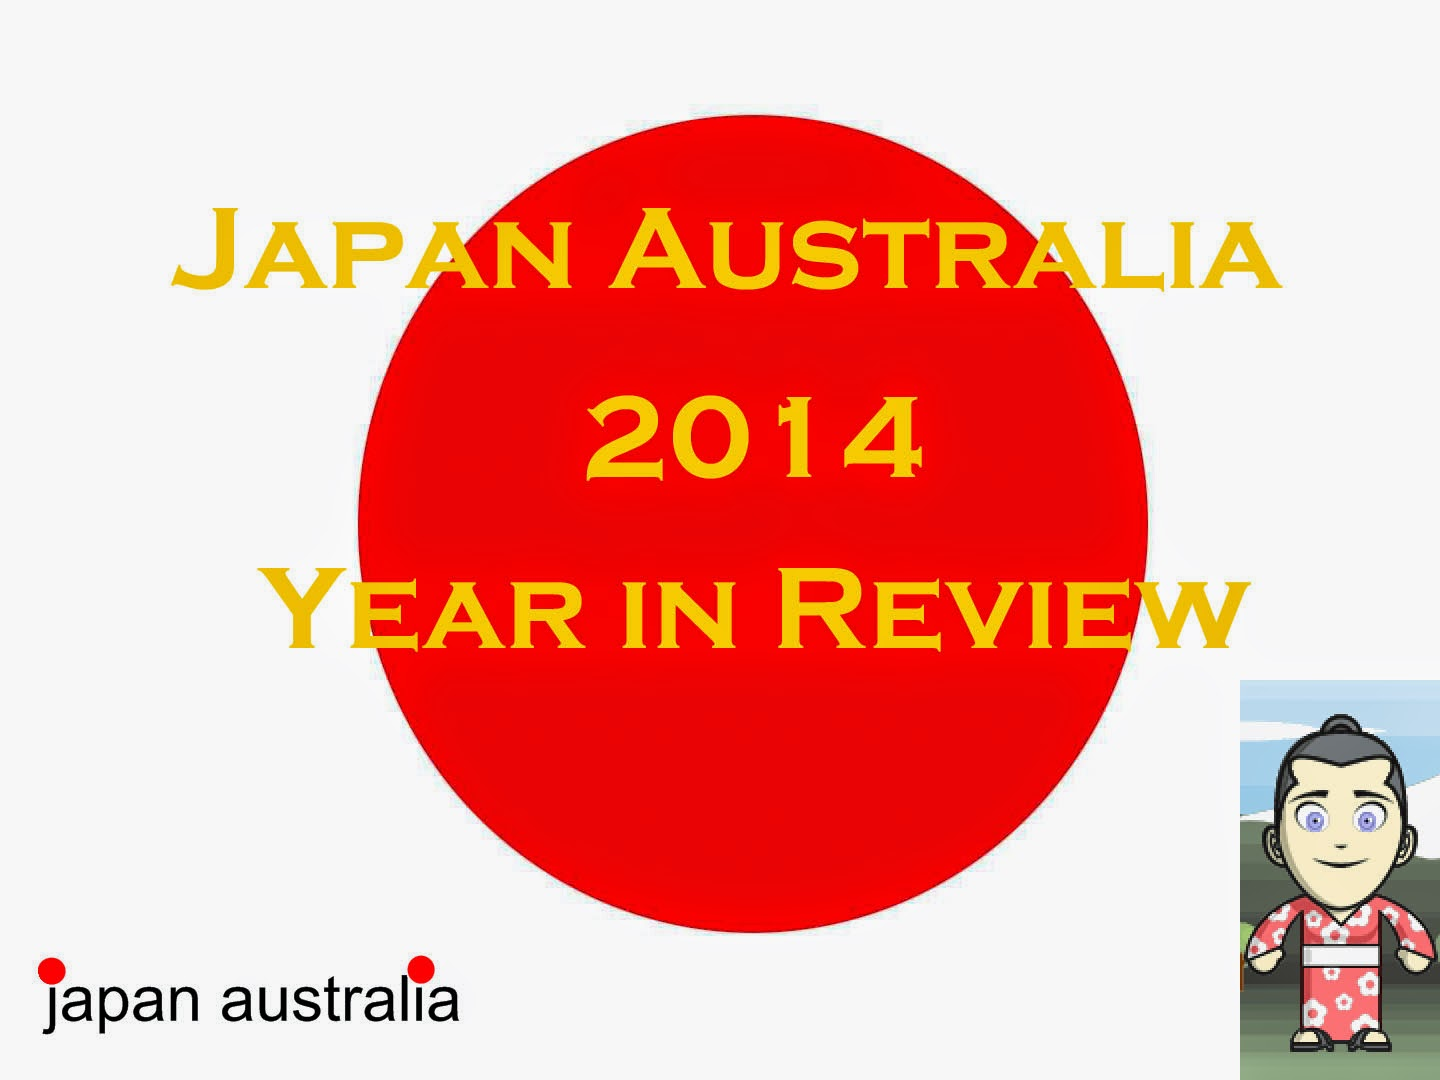 Japan Australia 2014 Year in Review